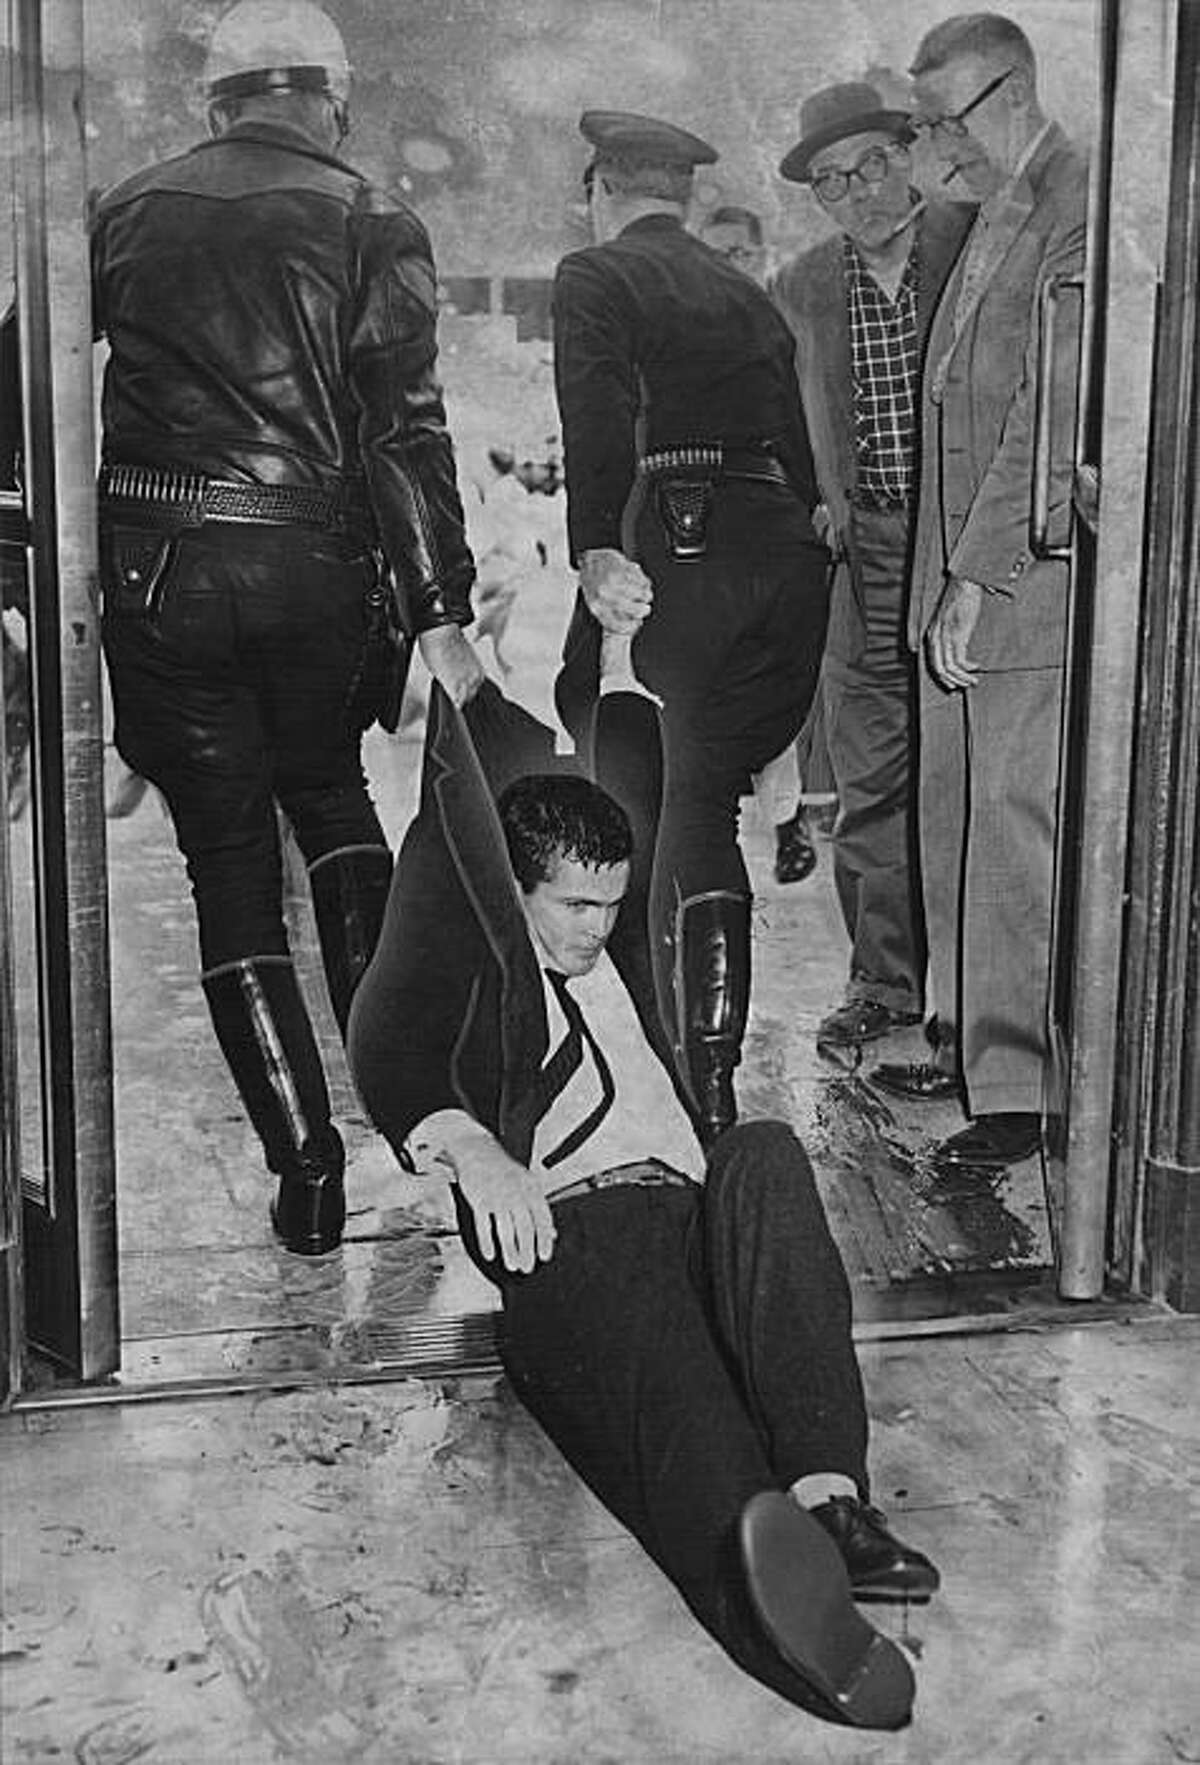 Two San Francisco police officers drag a young demonstrator out a City Hall door. He was one of 64 people taken to jail. Photo taken May 14, 1960.Two San Francisco police officers drag a young demonstrator out a City Hall door. He was one of 64 people taken to jail. Photo taken May 14, 1960.